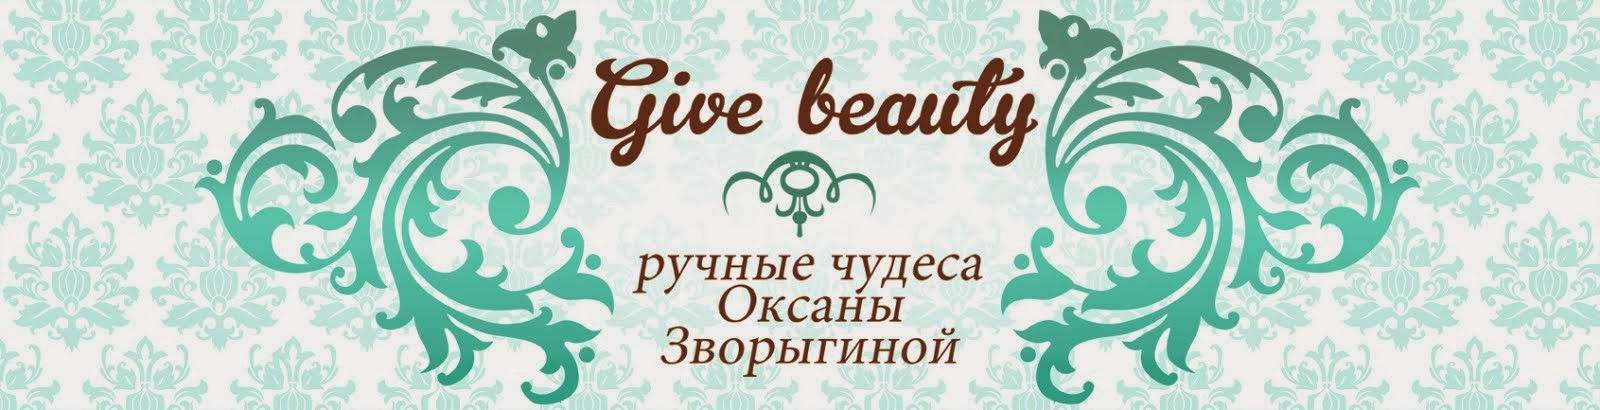 Give Beauty